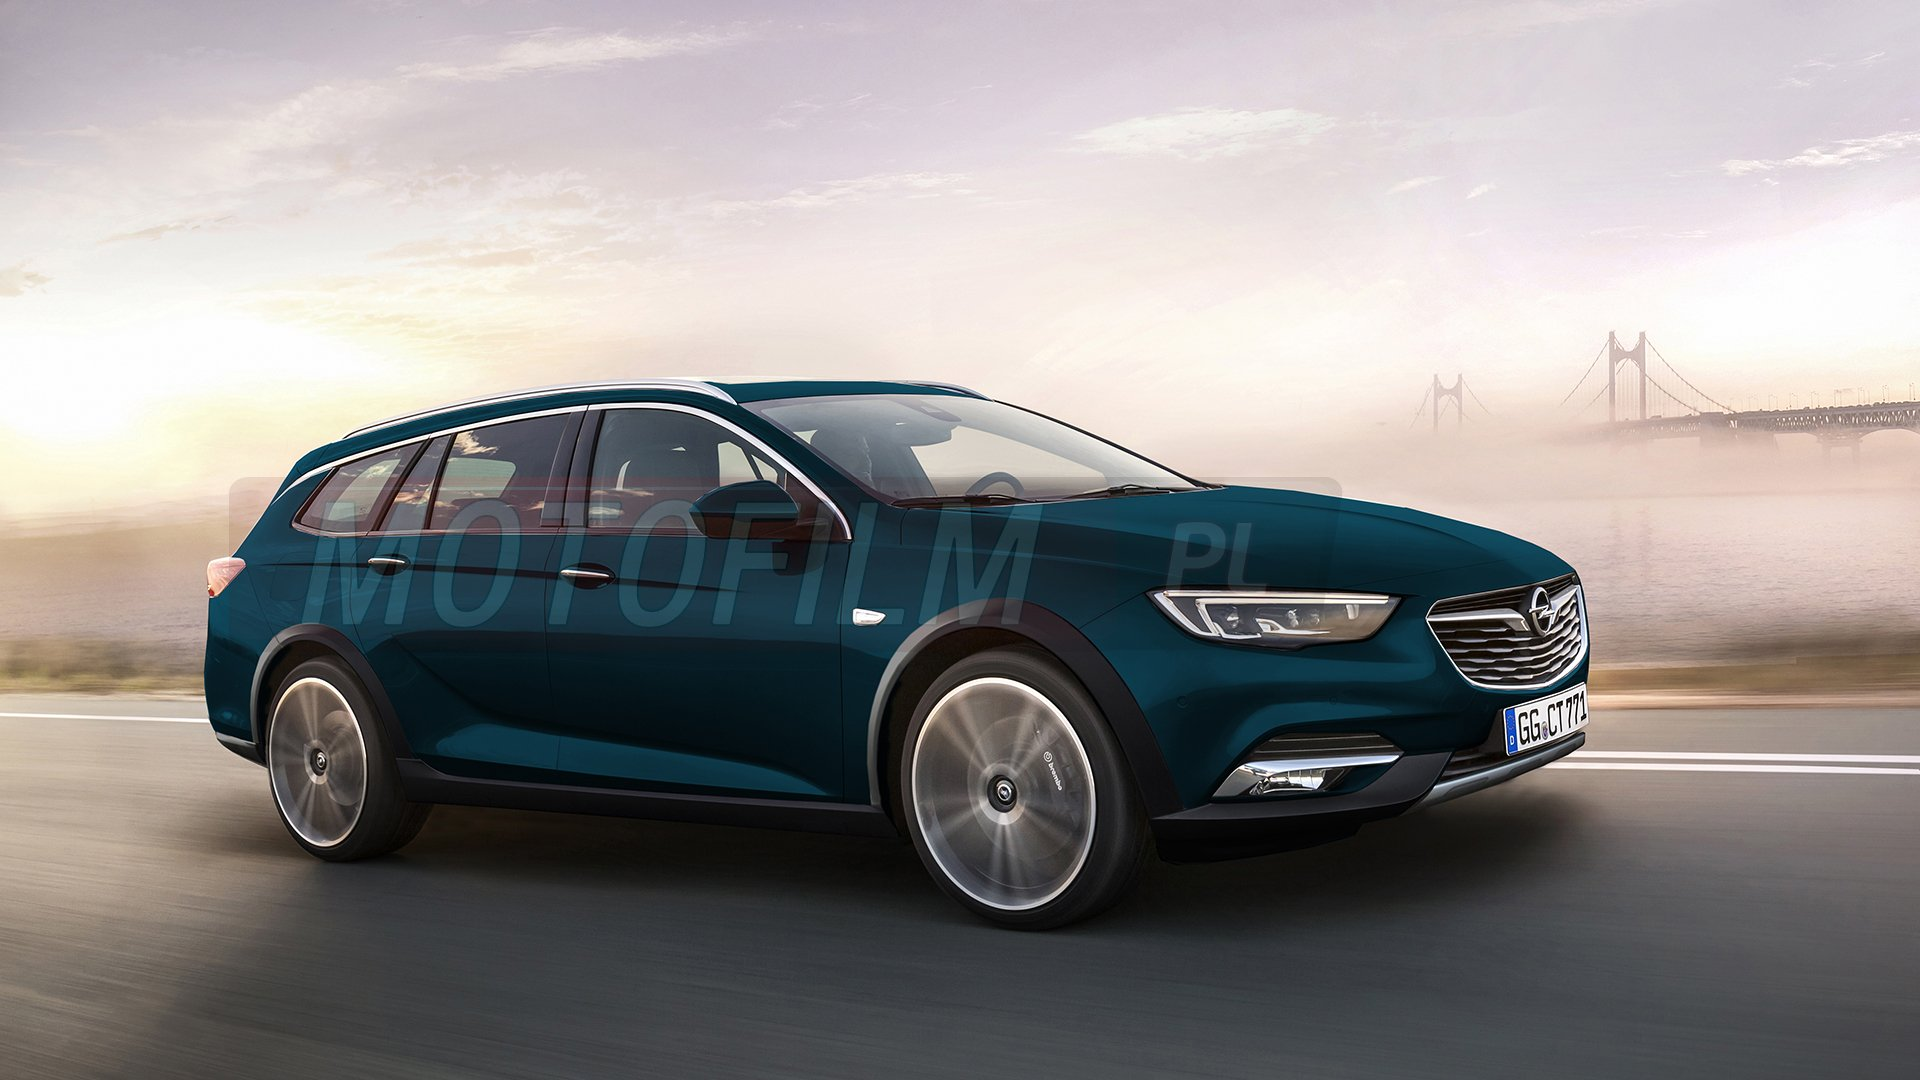 Opel Insignia Country Tourer rendering Motofilm.pl